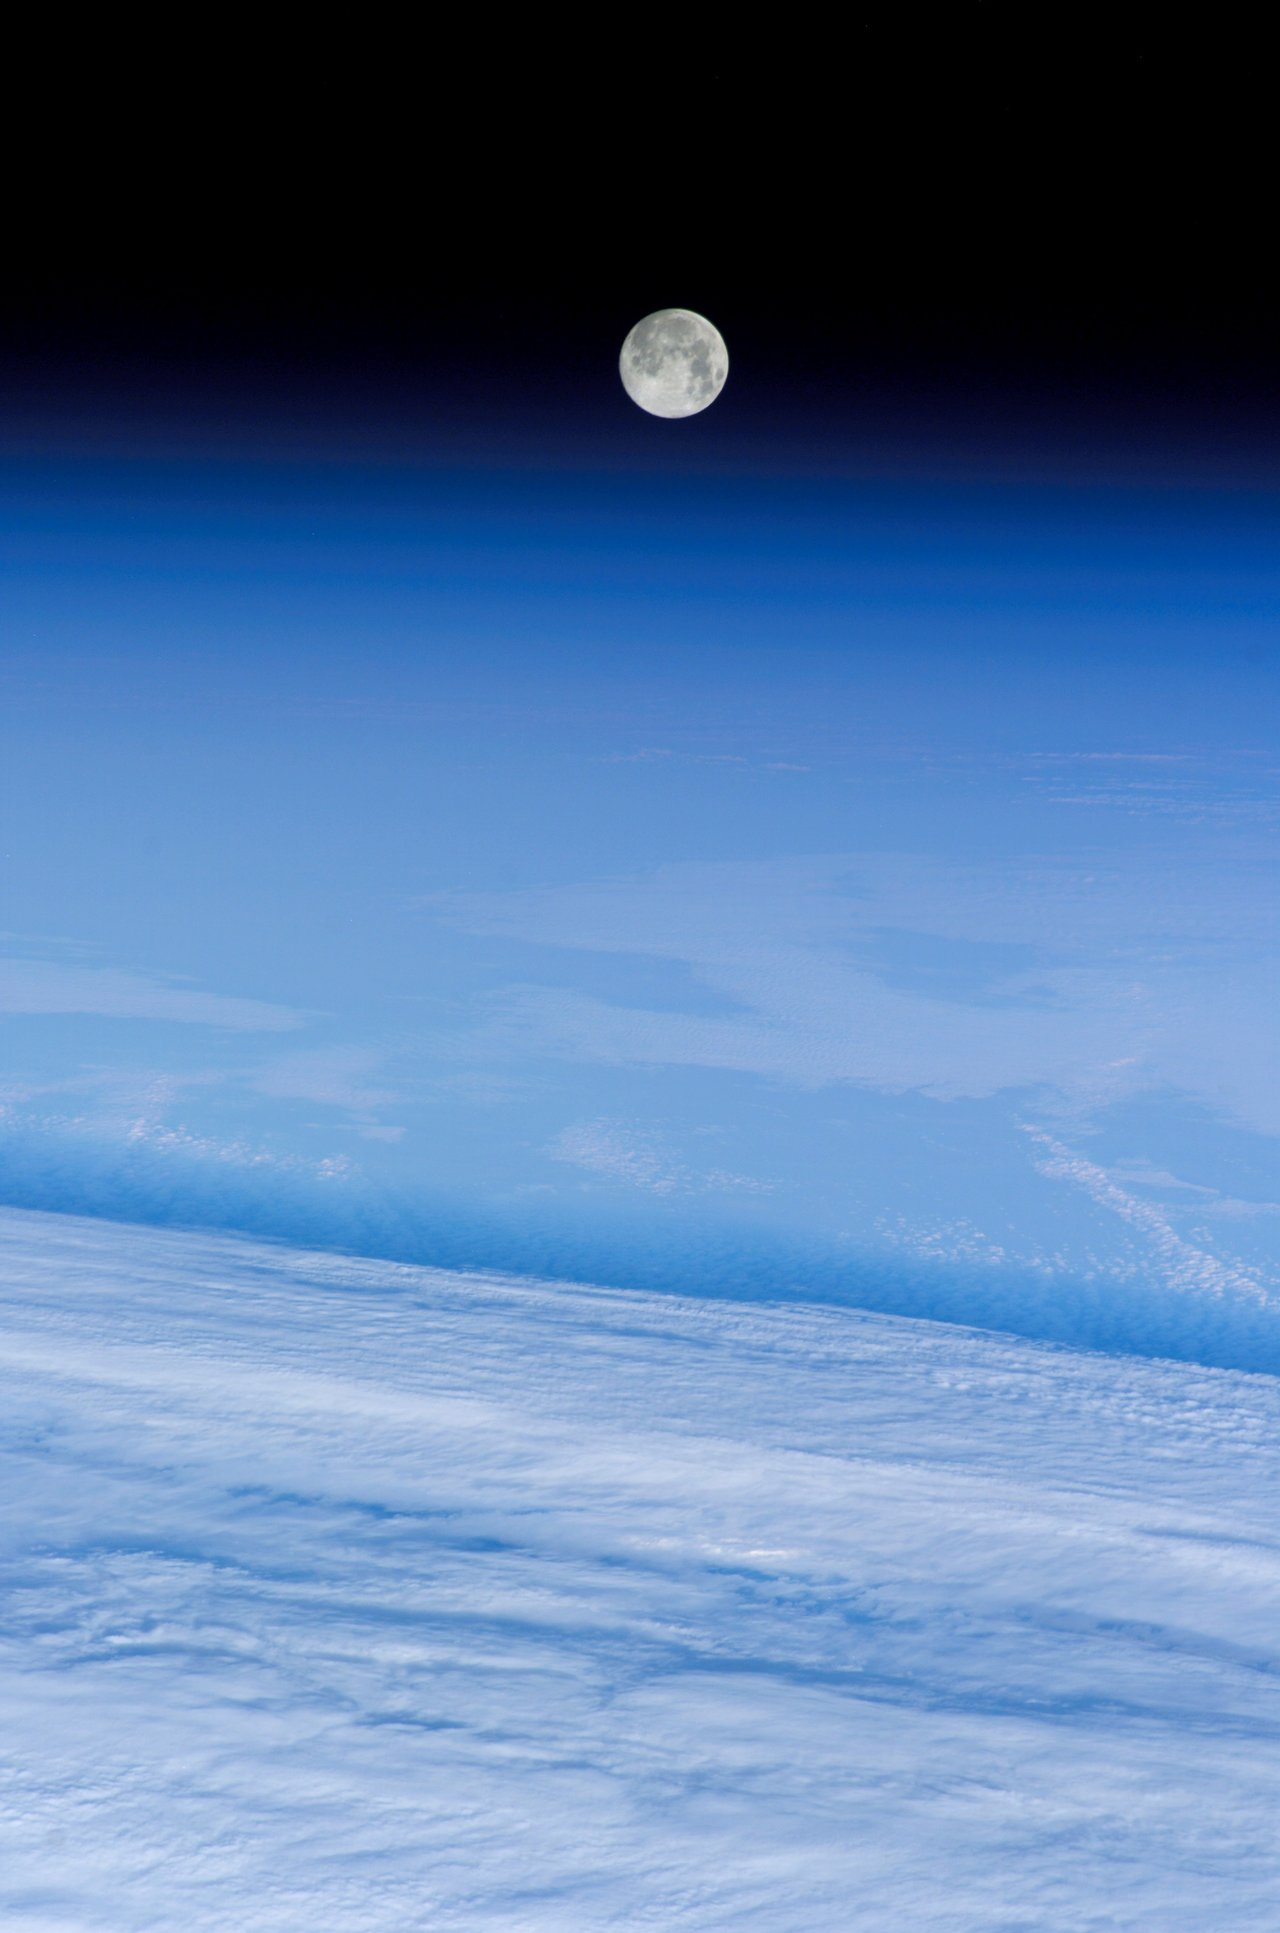 """Snow Moon"" over Earth taken by the International Space Station, 02/12/06. Credit: NASA"